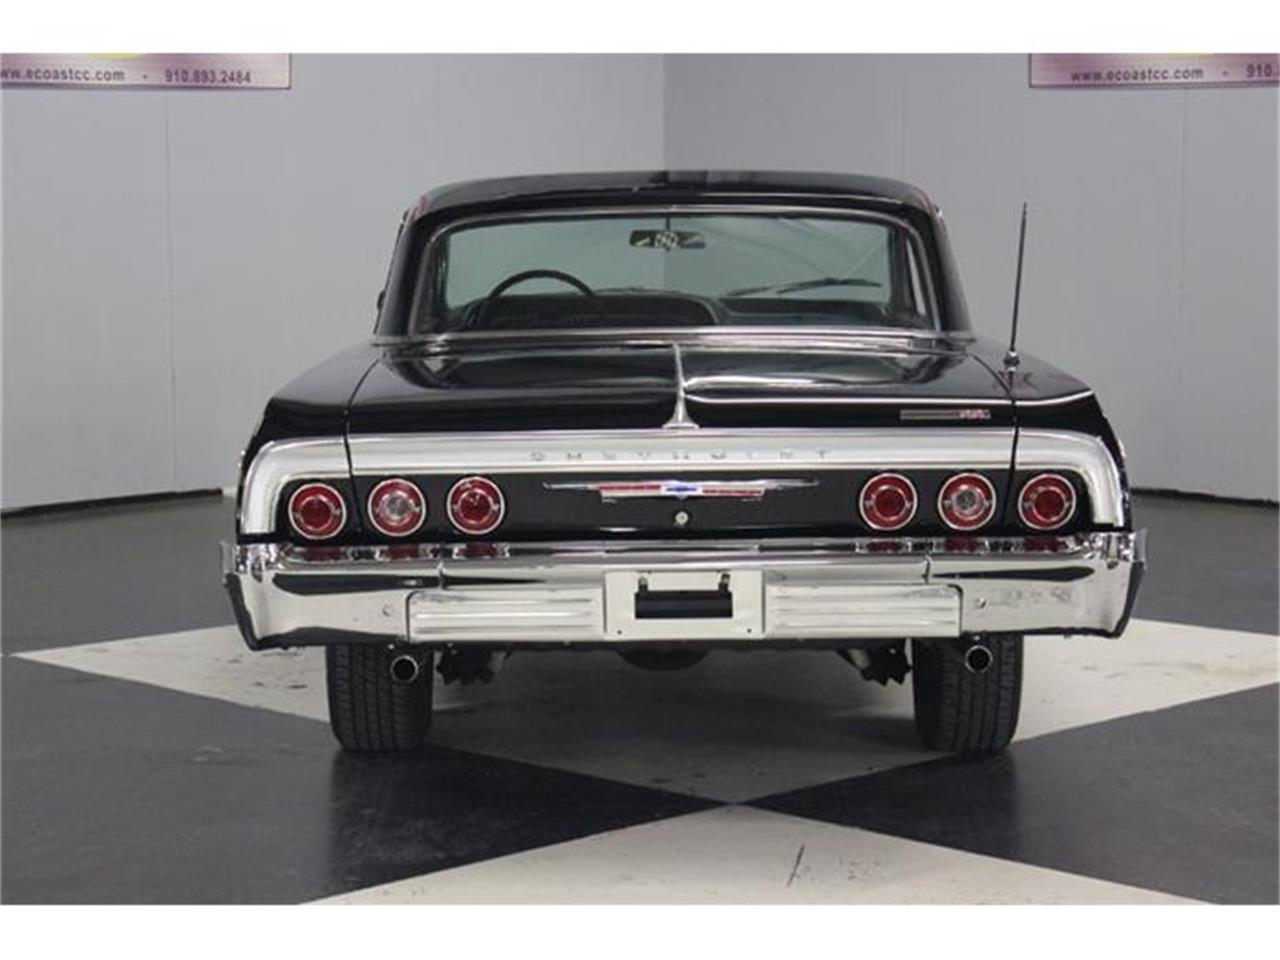 1964 Chevrolet Impala SS (CC-779507) for sale in Lillington, North Carolina